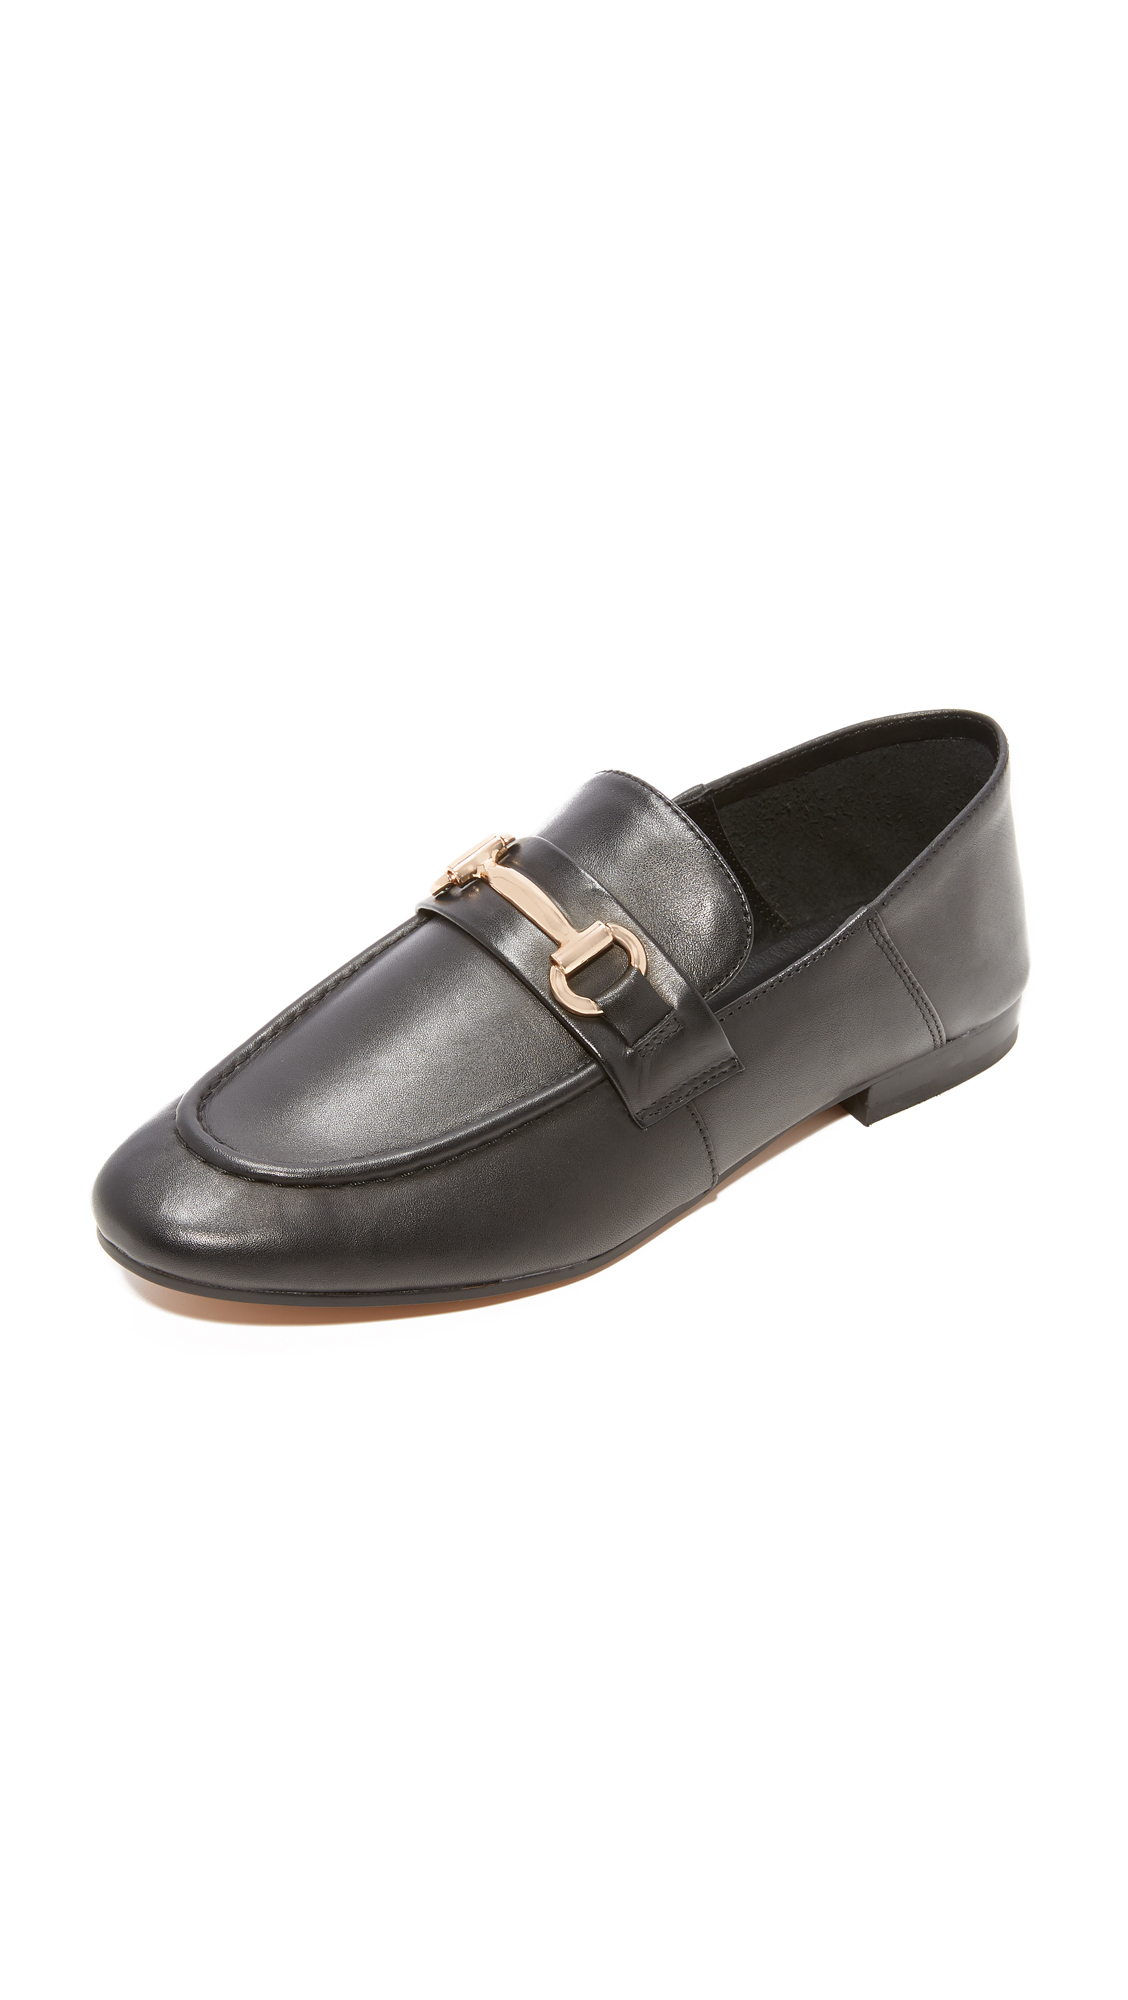 Steven Santana Step Down Loafers - Black